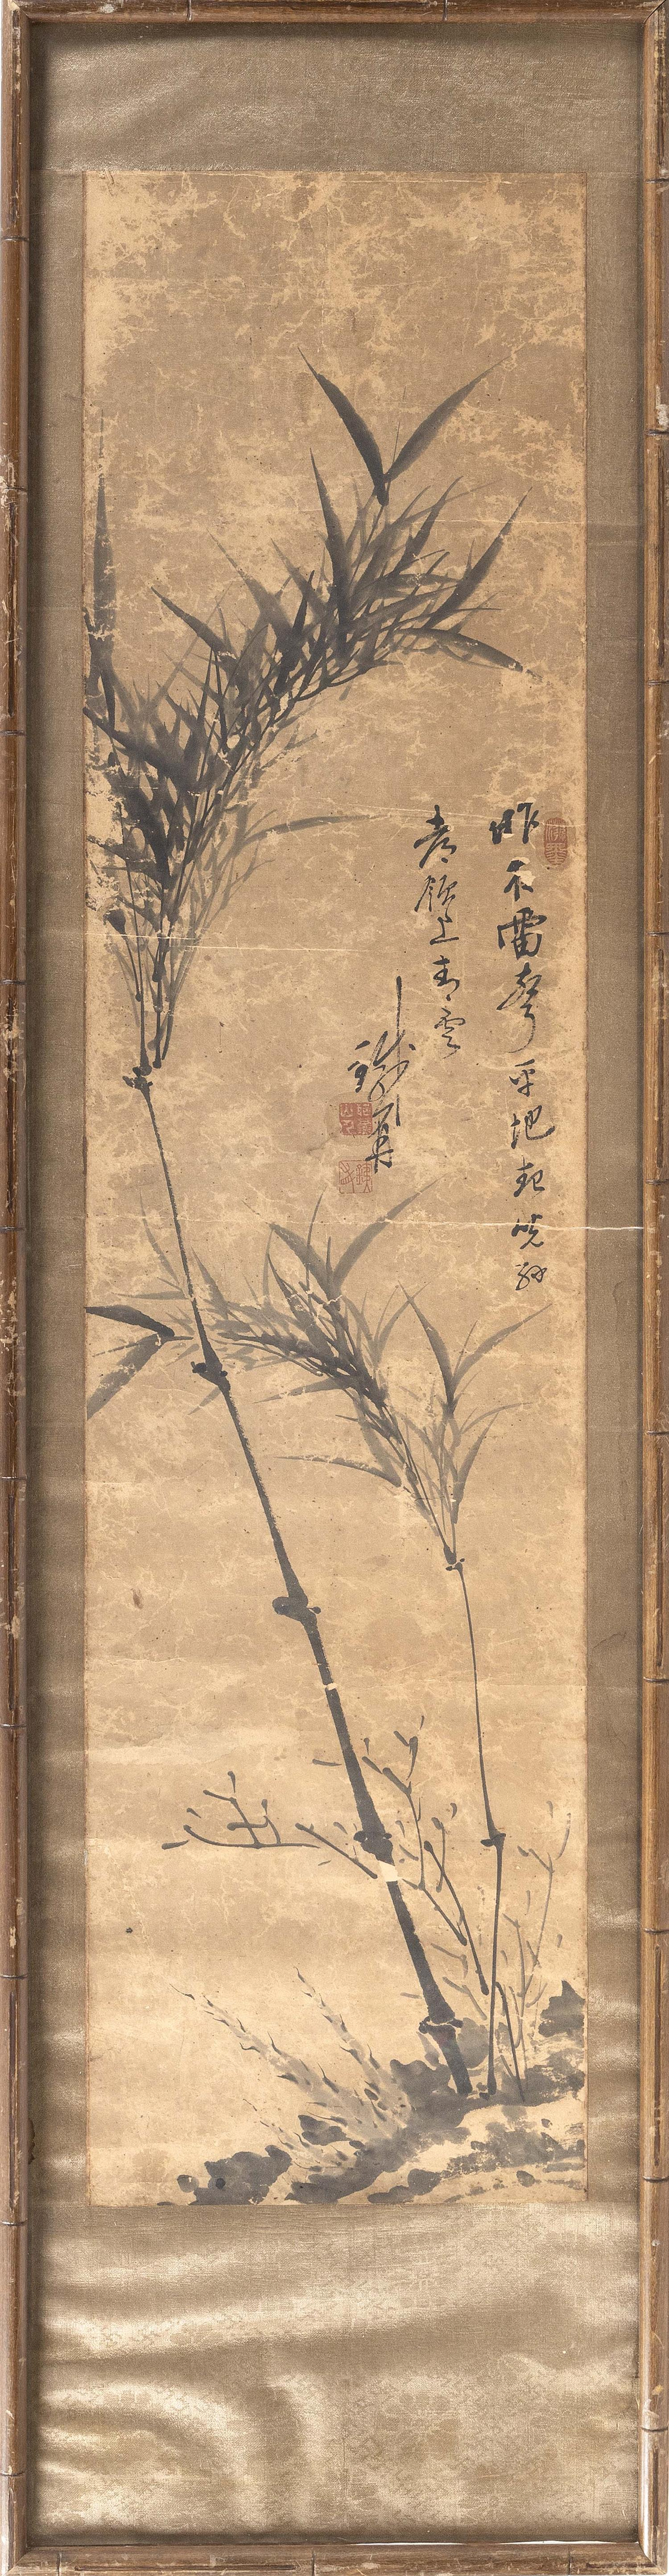 """CHINESE PAINTING ON PAPER Depicts bamboo and calligraphy. Signed and seal marked. 48.5"""" x 11.5"""". Framed 61"""" x 15.5"""". Provenance: The..."""